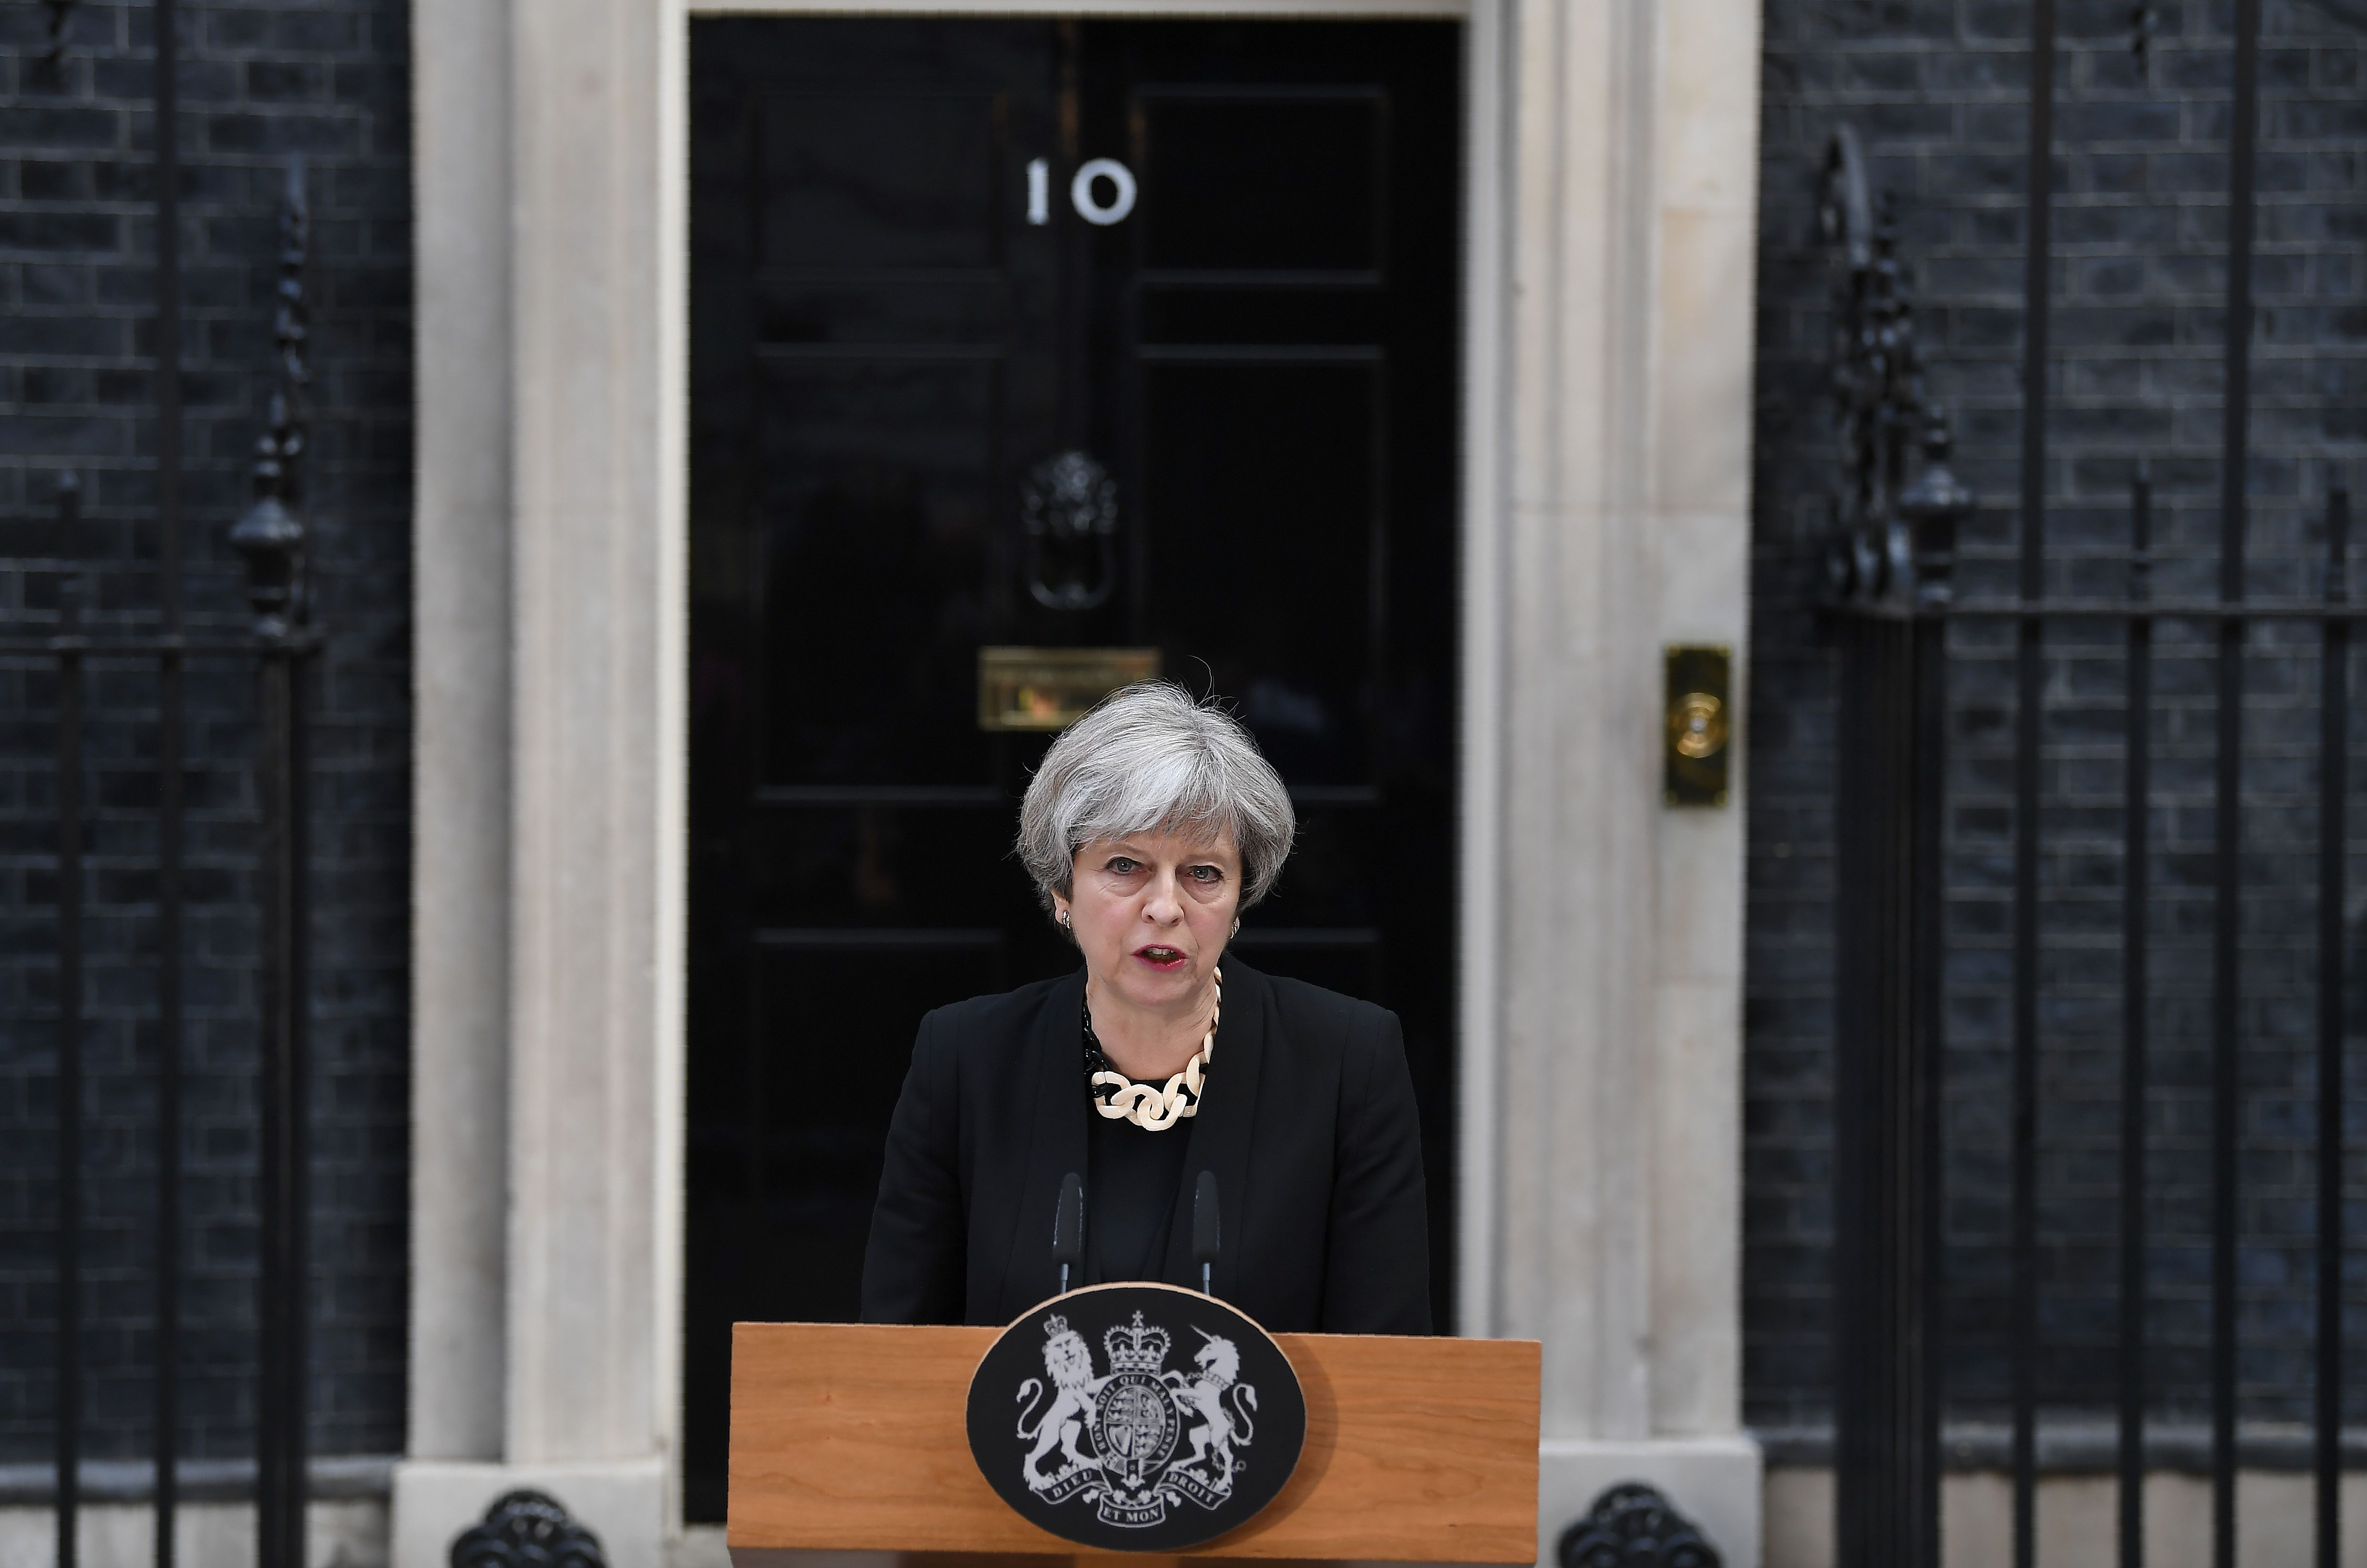 British prime minister Theresa May addressed the country Sunday, the morning after a terrorist attack in London.